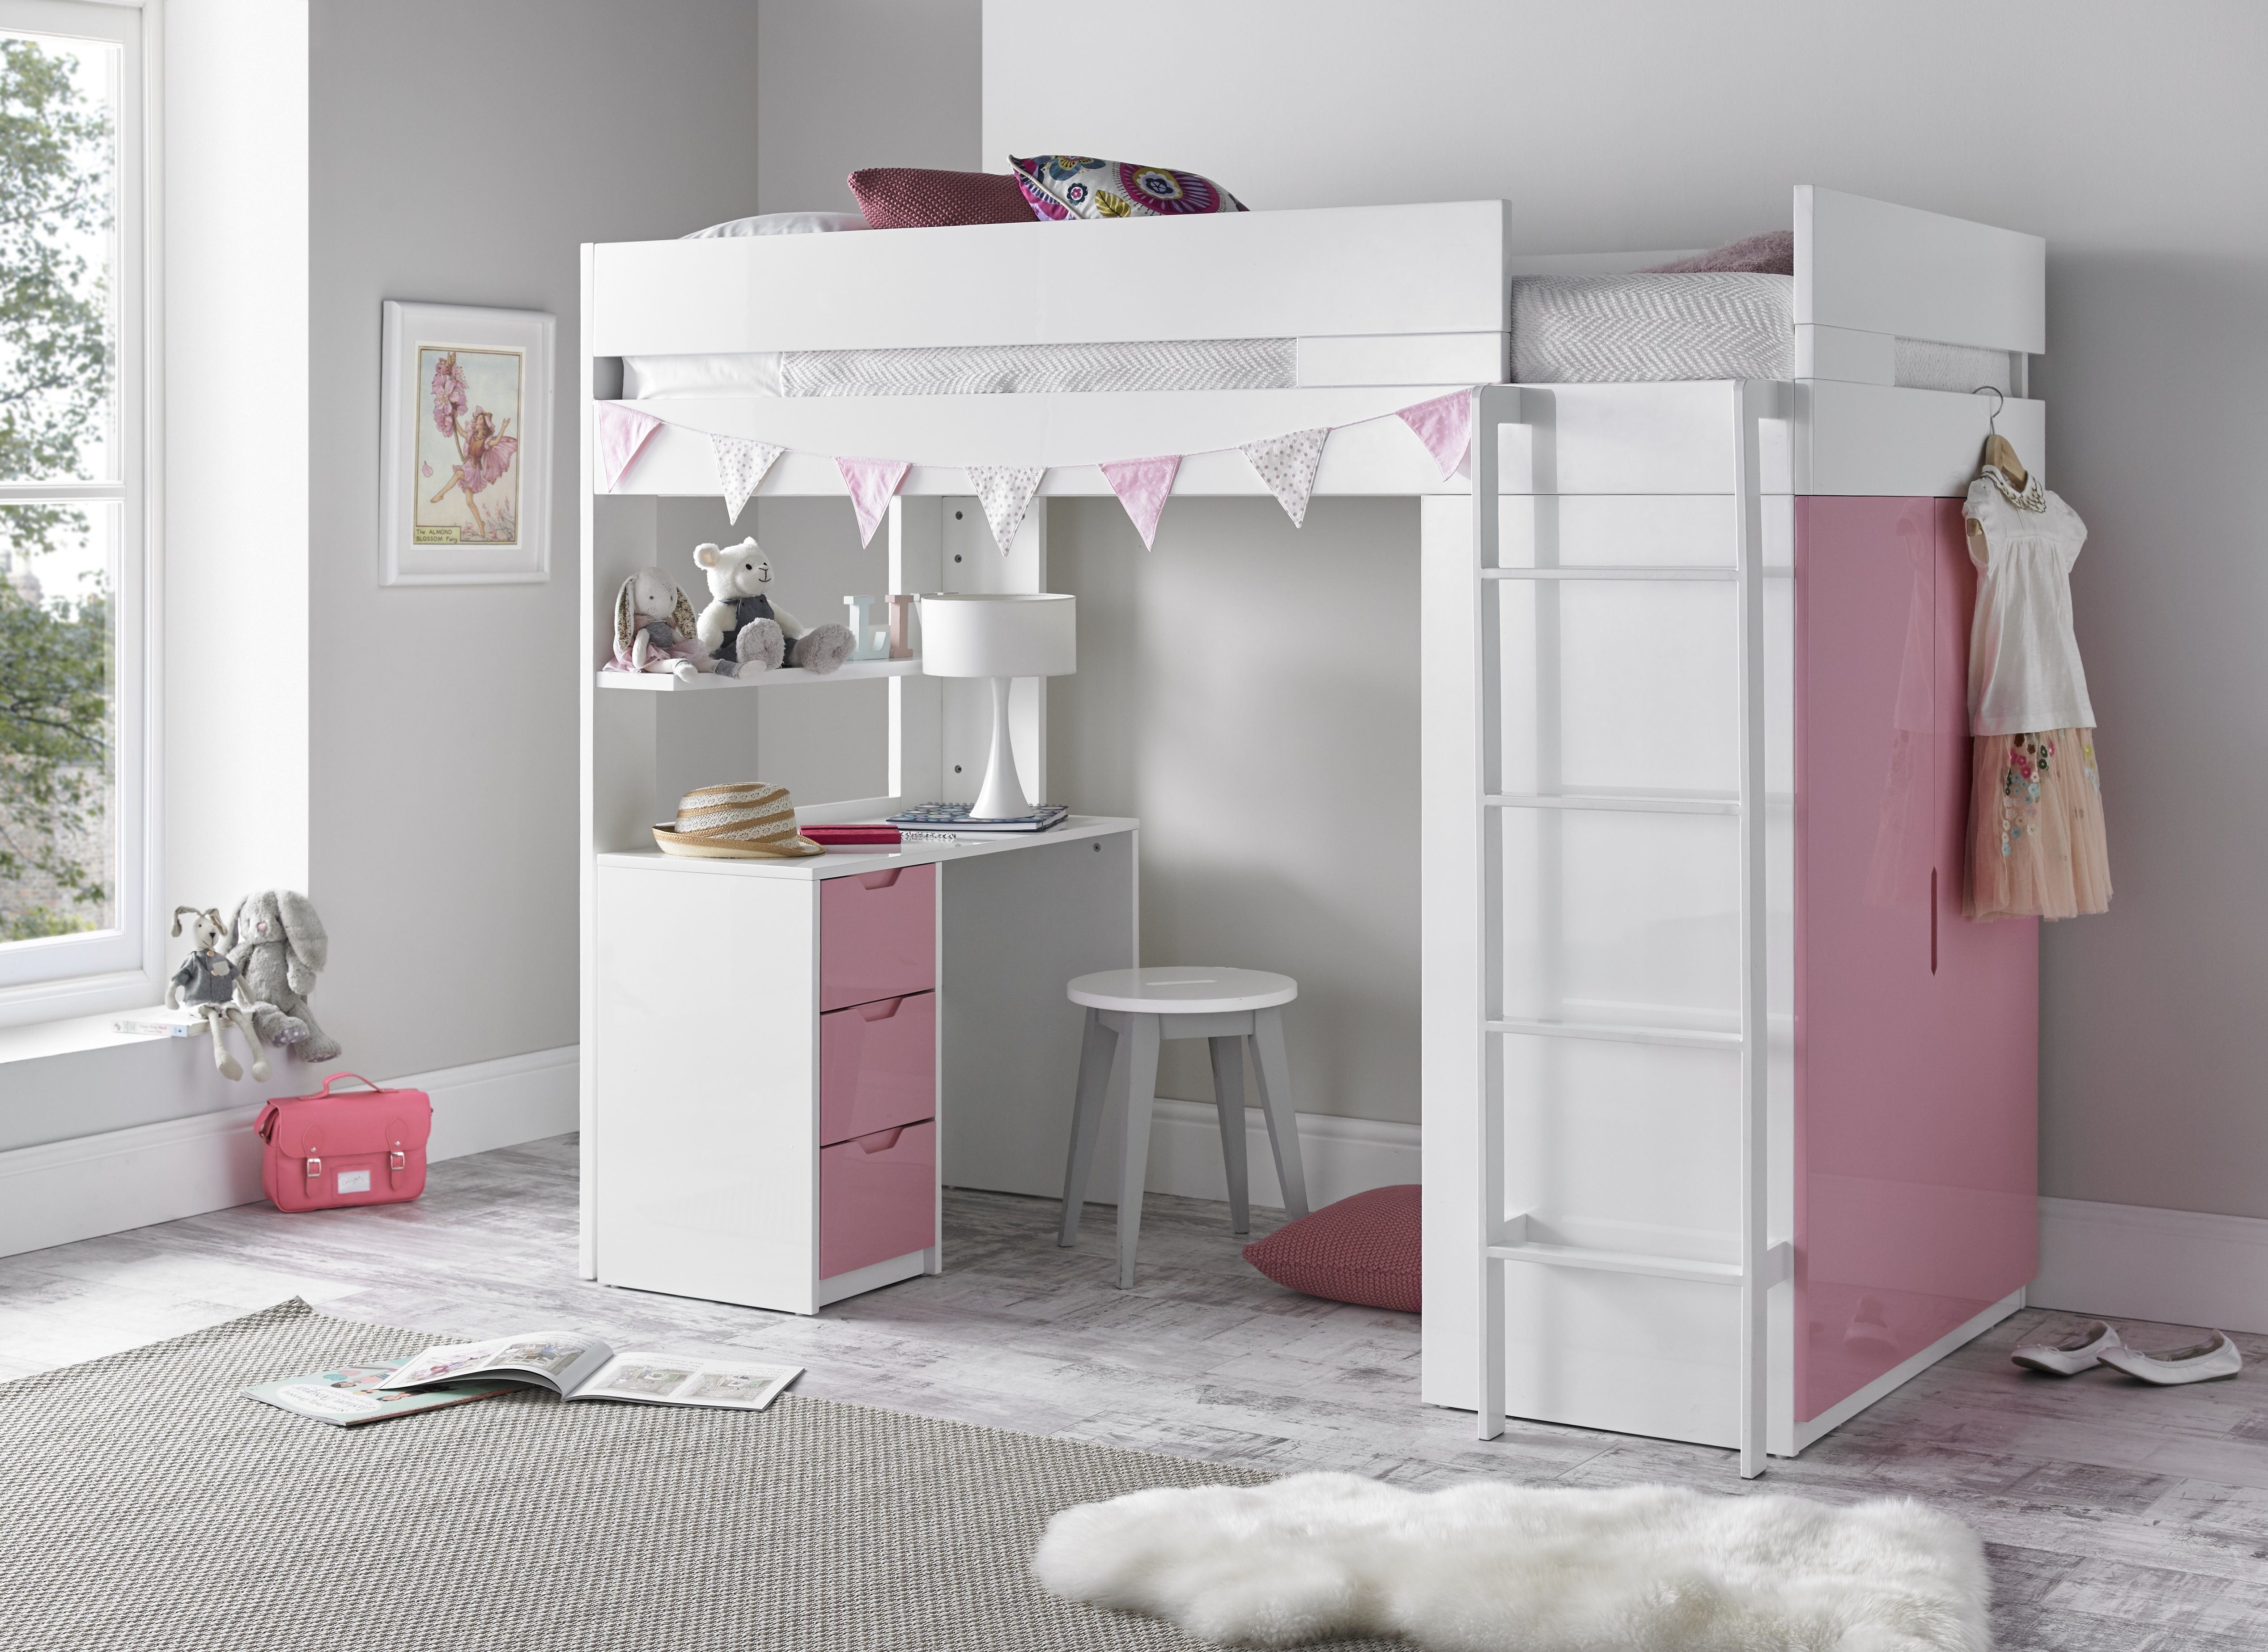 High Sleeper Pink Bed Kids bedroom furniture design, Mid